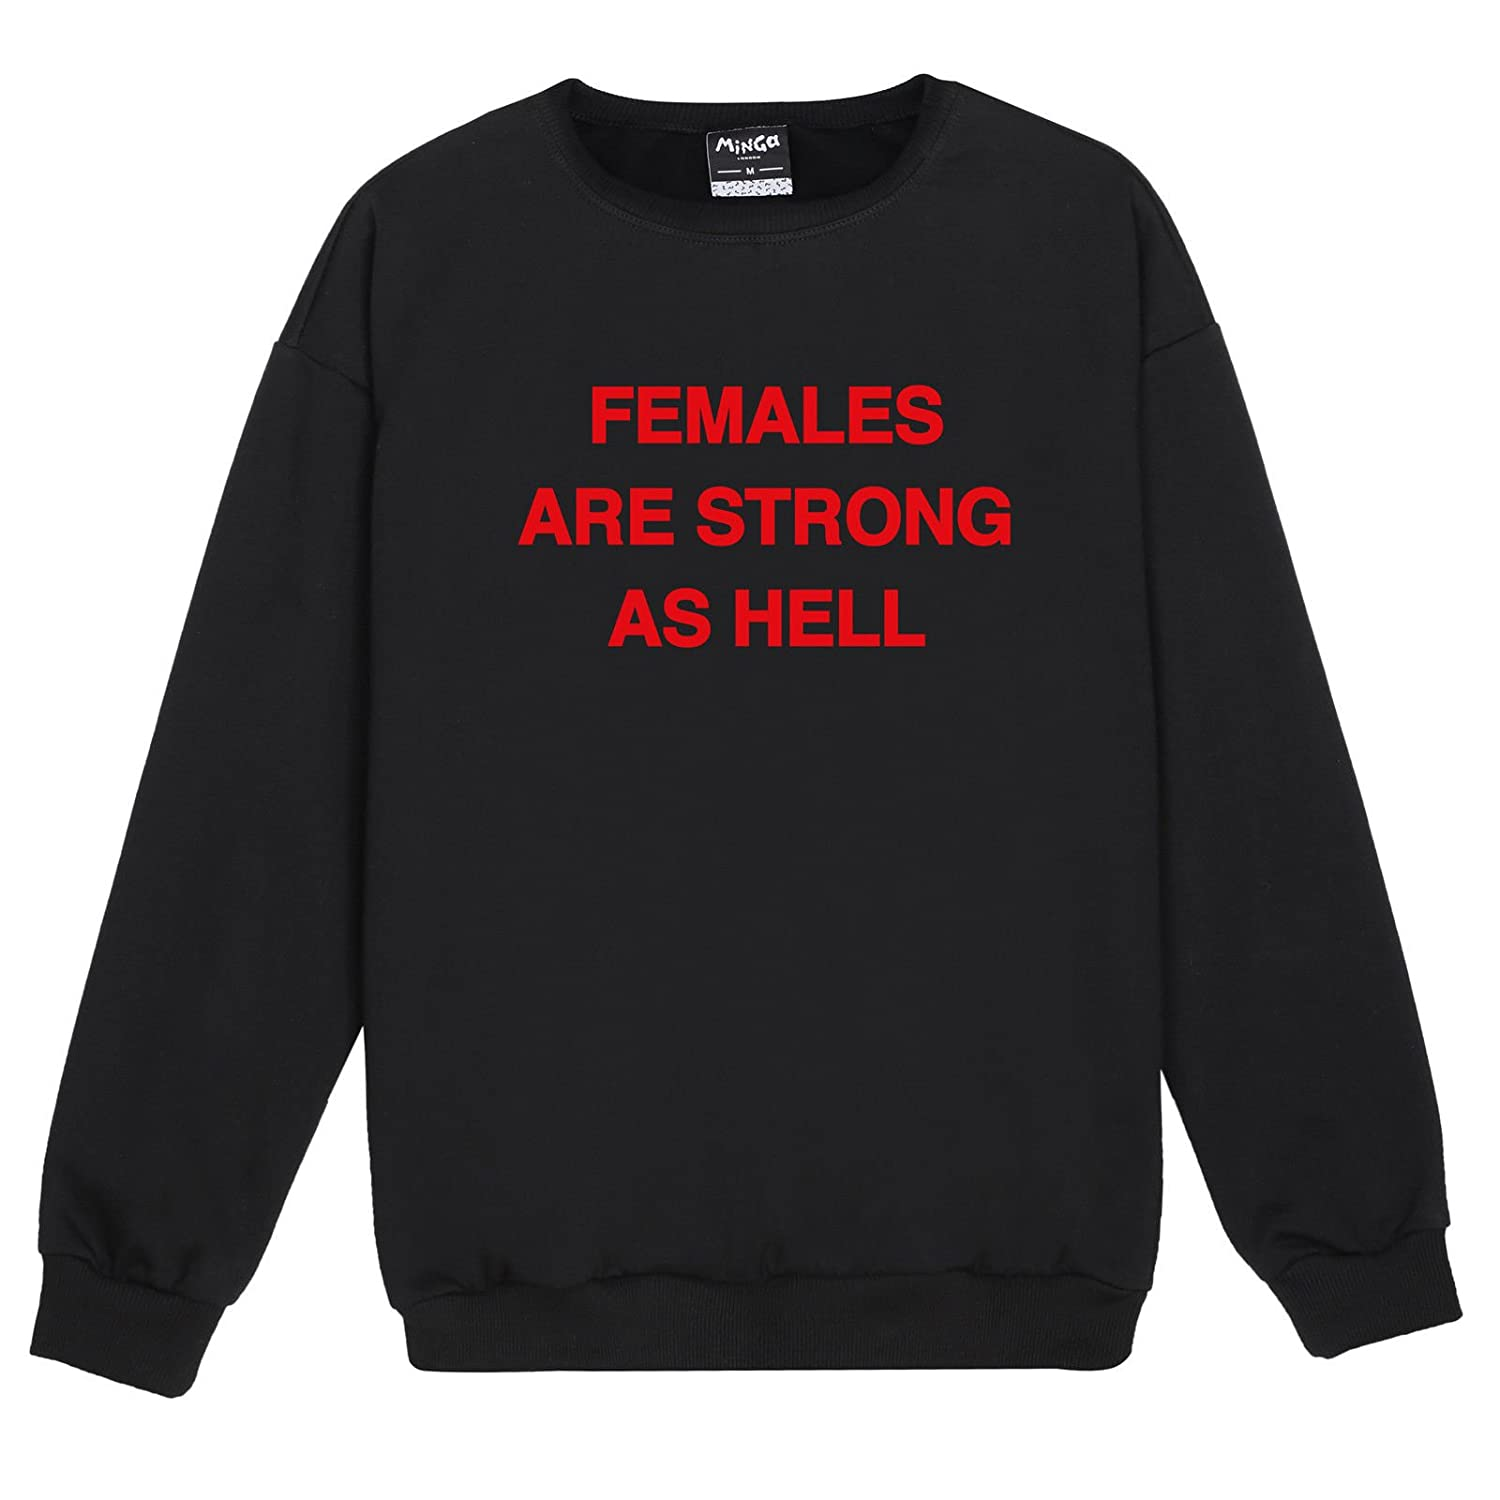 Females Are Strong Sweater Jumper Top Women's Fun Tumblr Grunge Hipster Feminist Slogan